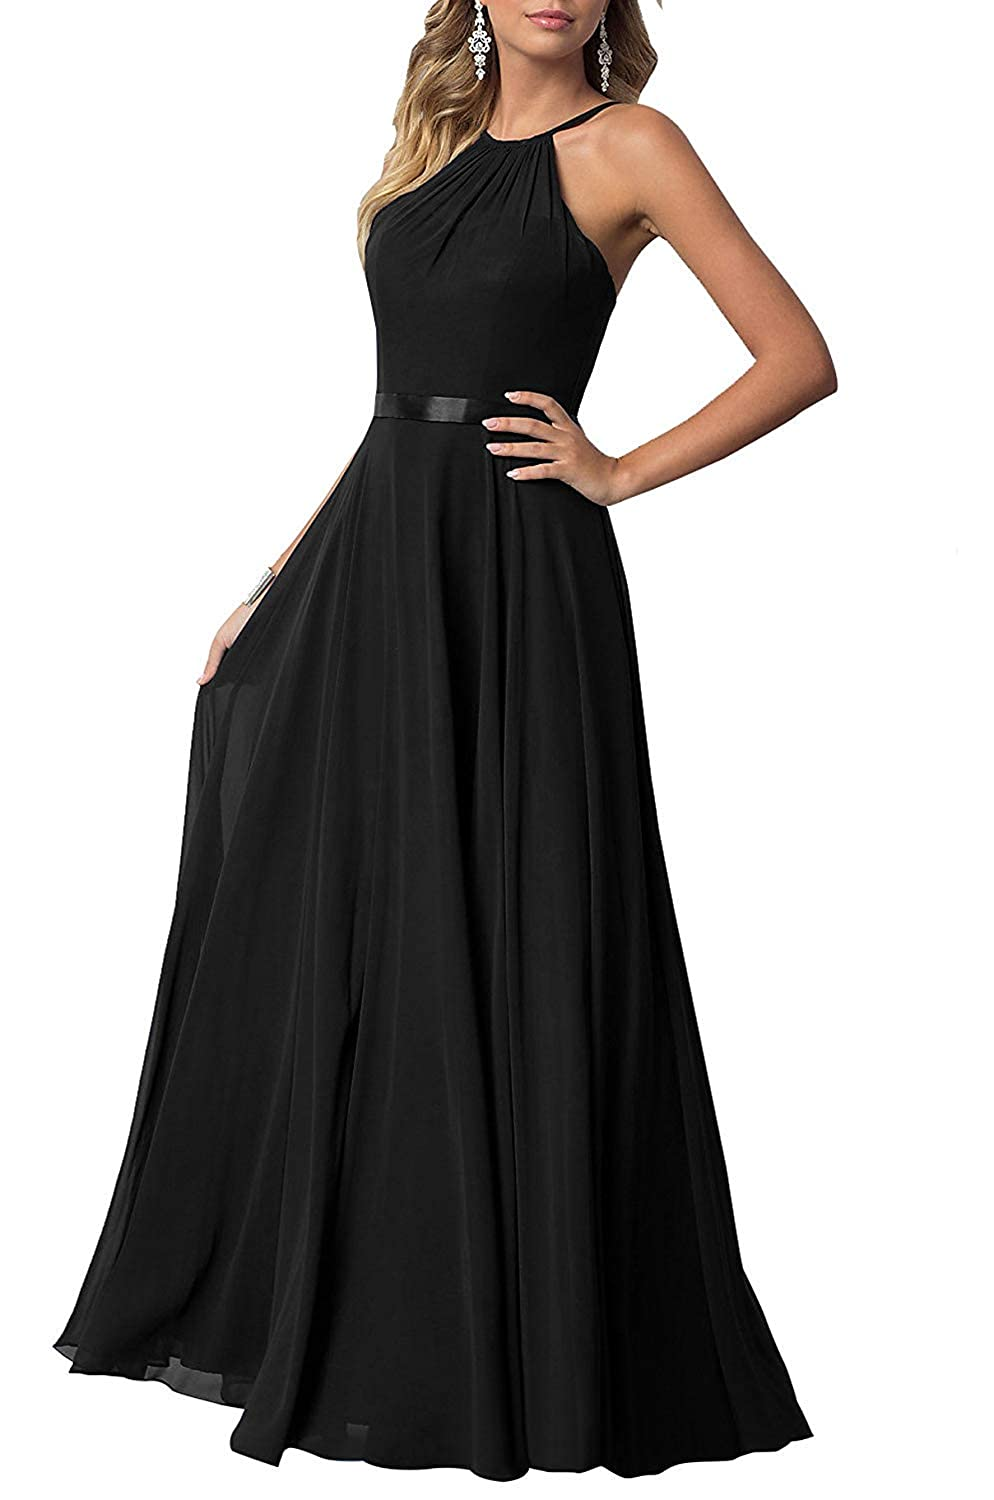 Black YUSHENGSM Long HighNeck Spaghetti Strap Prom Dresses Party Bridesmaid Dress Maxi Gowns